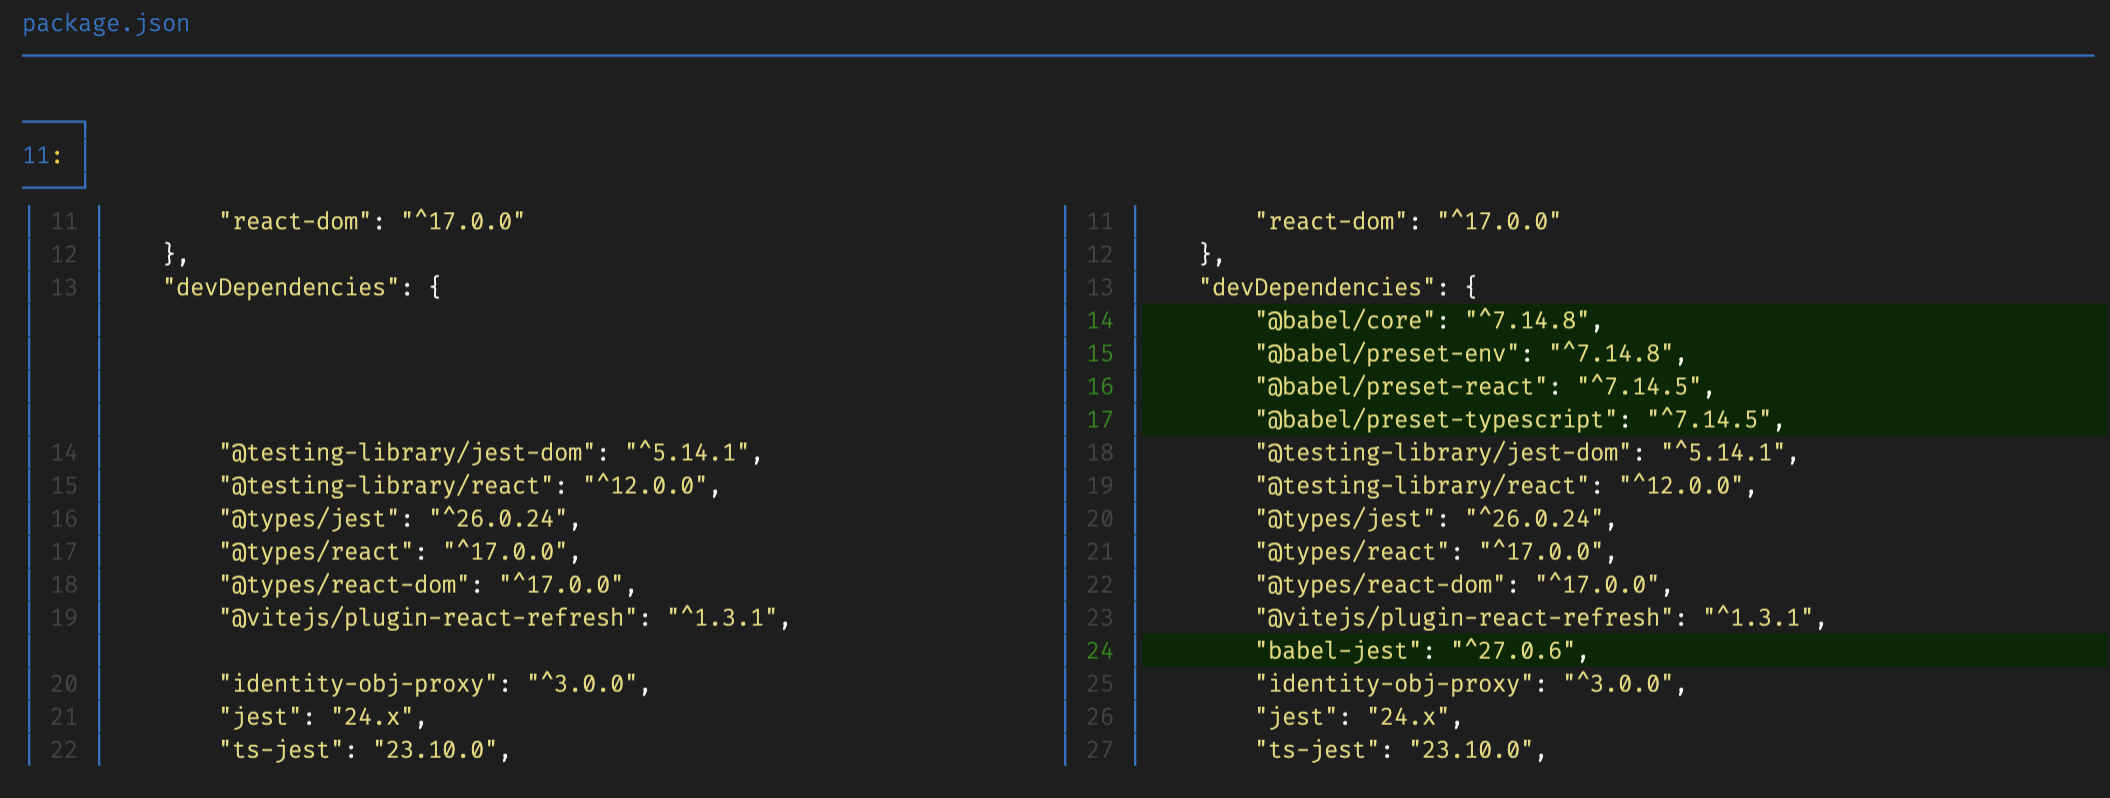 showing the git diff of the package.json